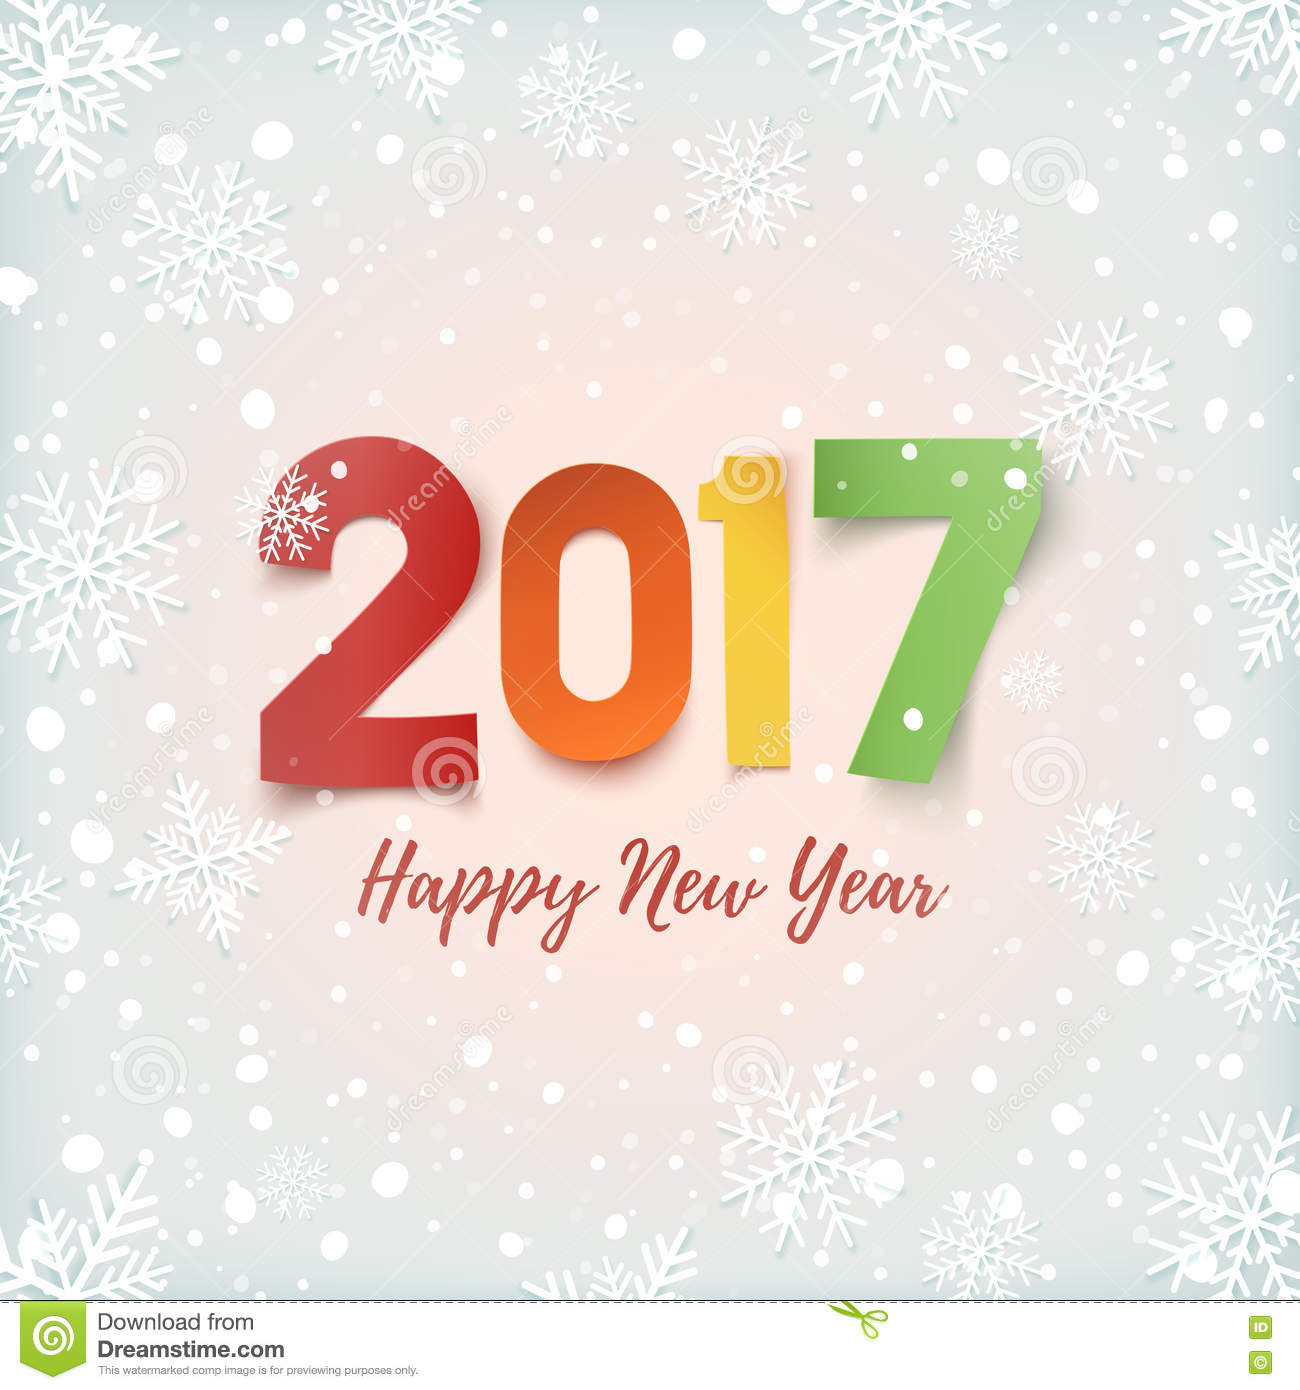 Happy New Year 2017 Greeting Card Template Vector Image – New Year Greeting Card Template